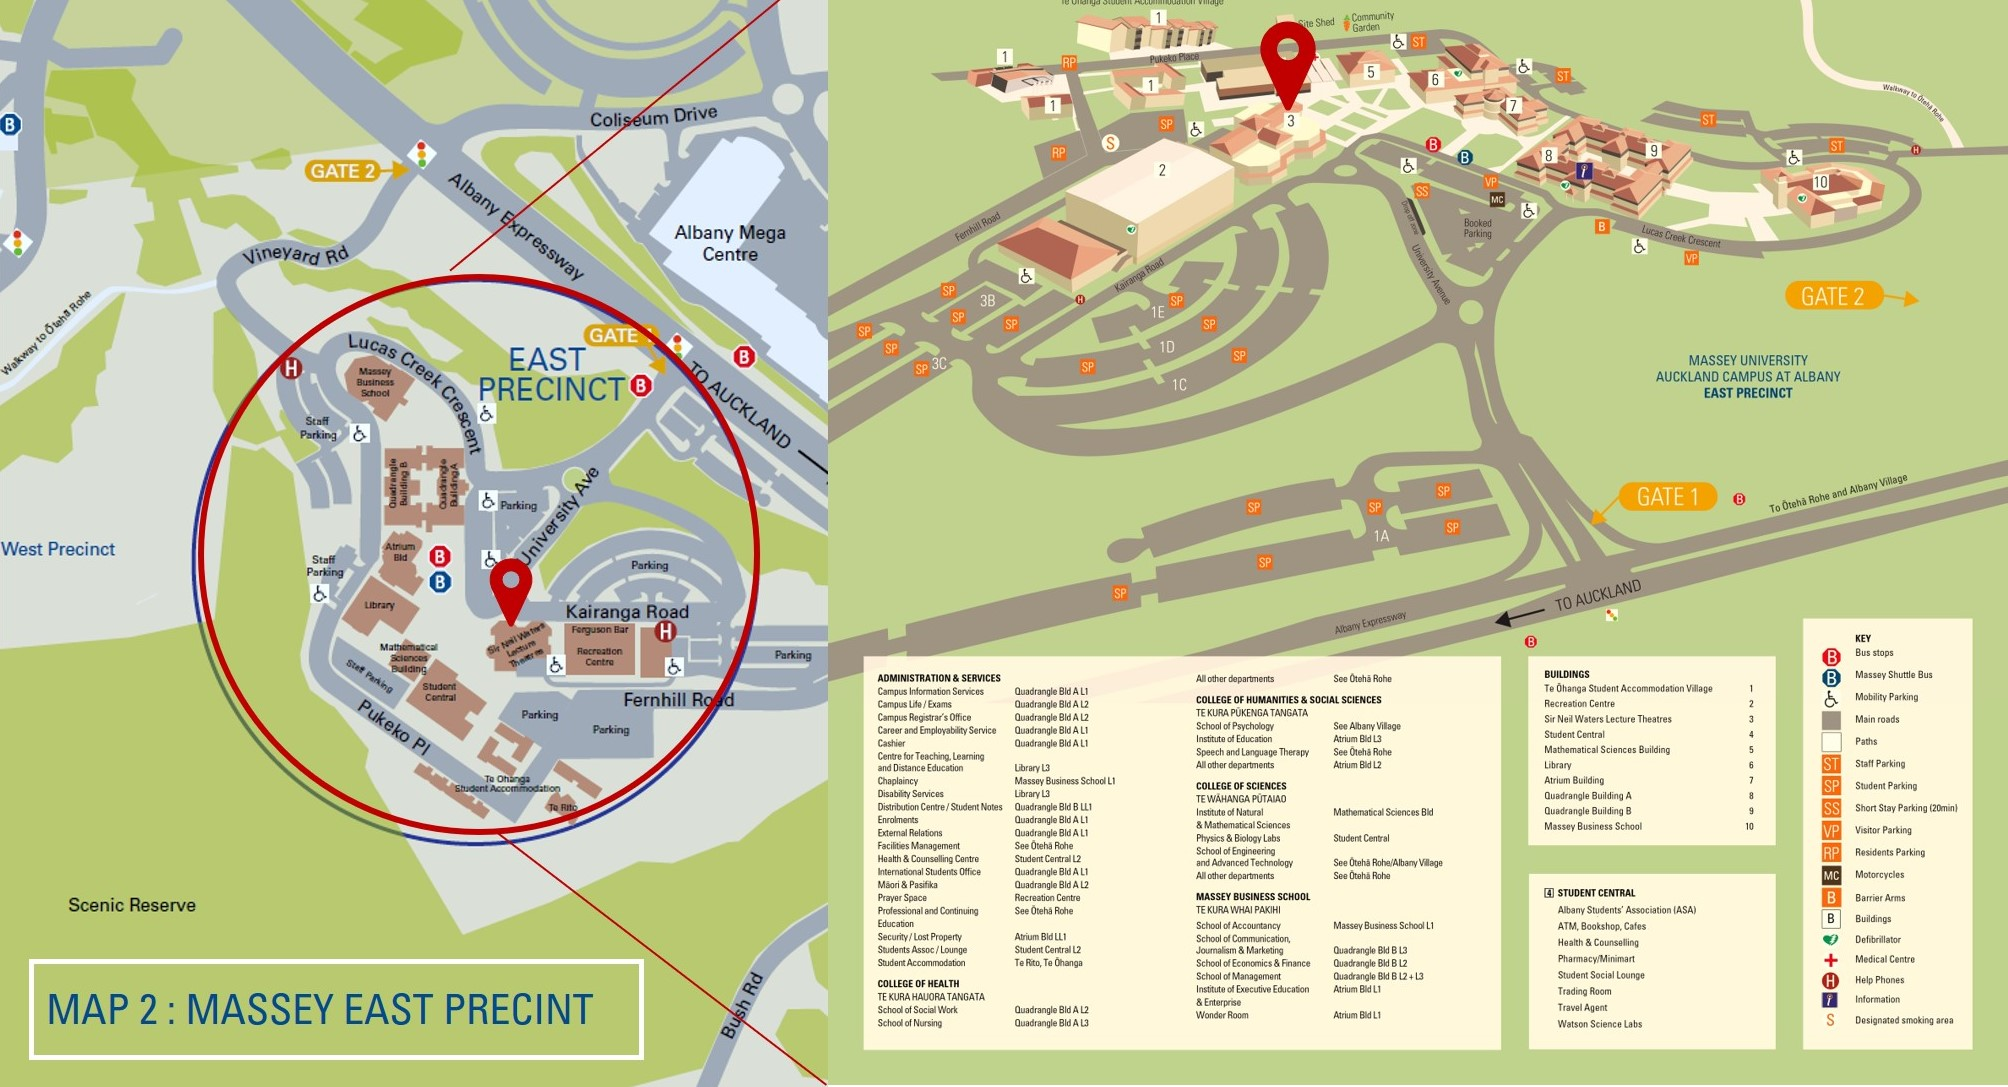 massey albany campus map Maps Venue Vicinity Tourism And The Sdgs massey albany campus map